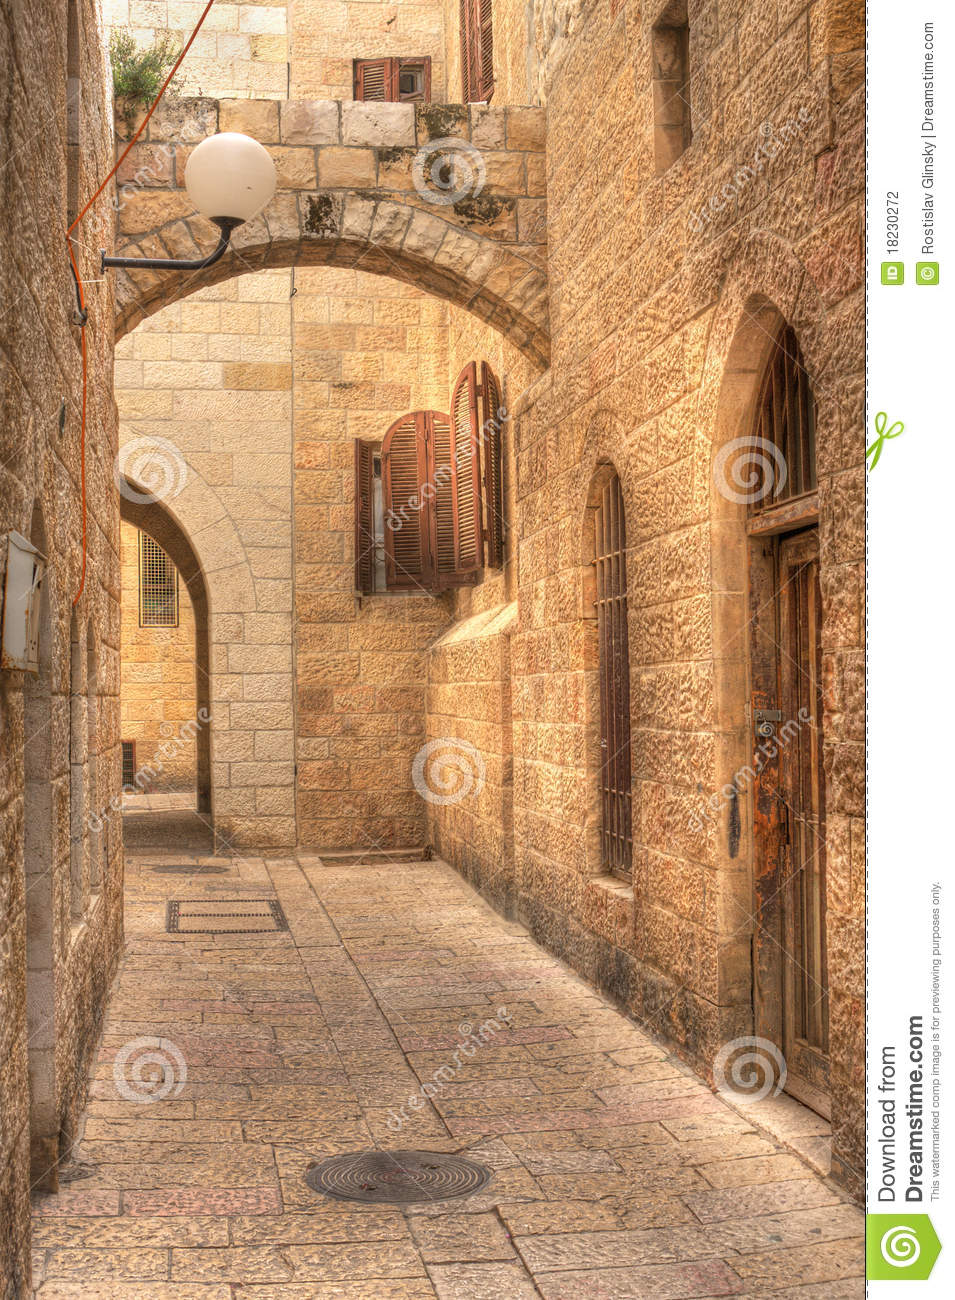 Old Street In Jerusalem Israel Stock Photo  Image of place touristic 18230272